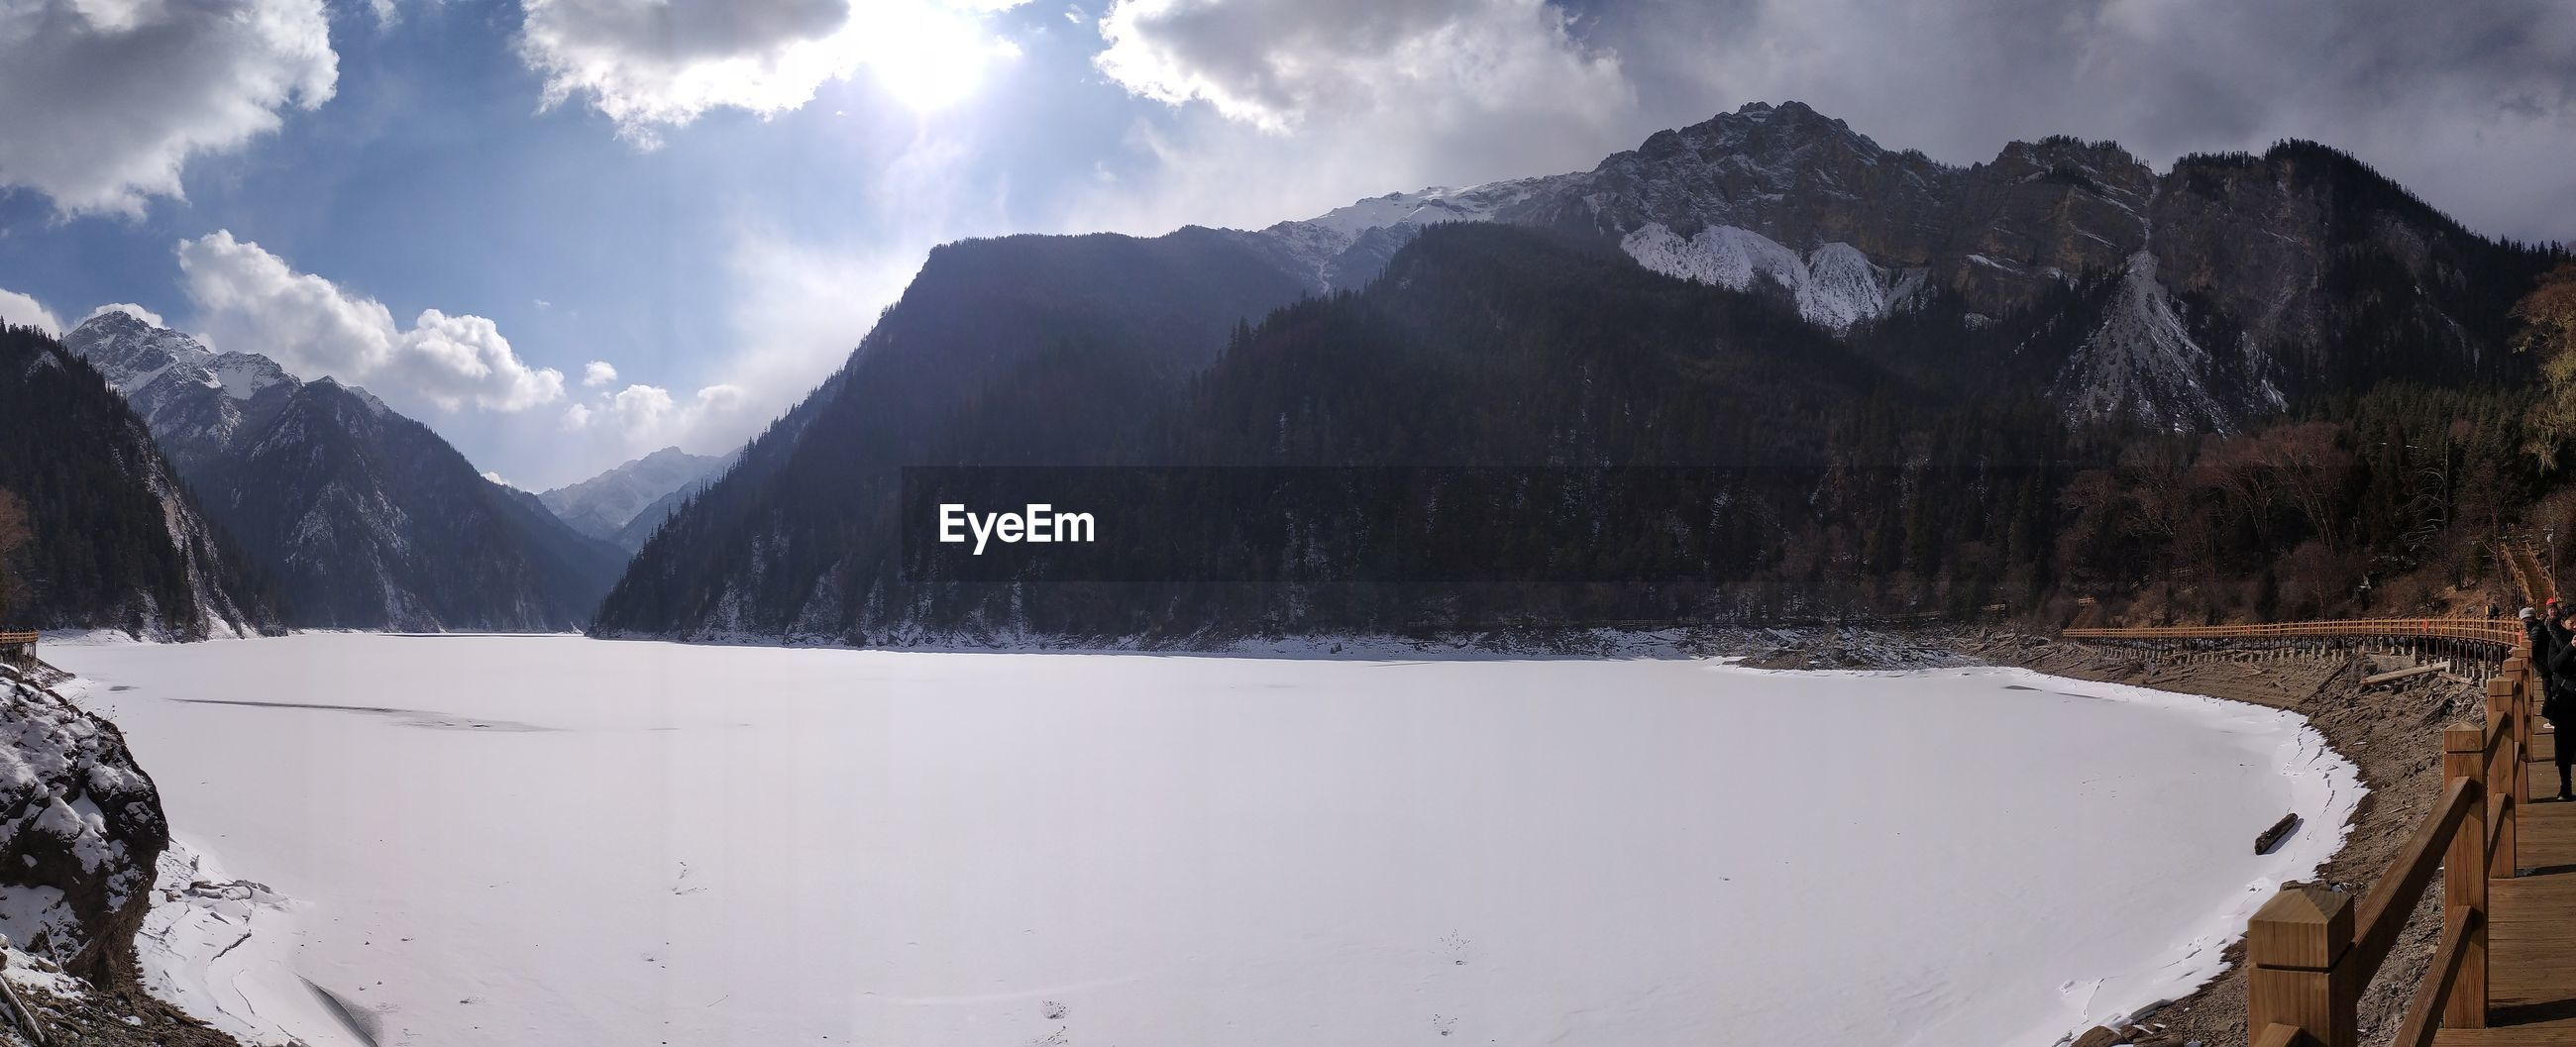 PANORAMIC VIEW OF SNOWCAPPED MOUNTAINS AGAINST SKY DURING WINTER